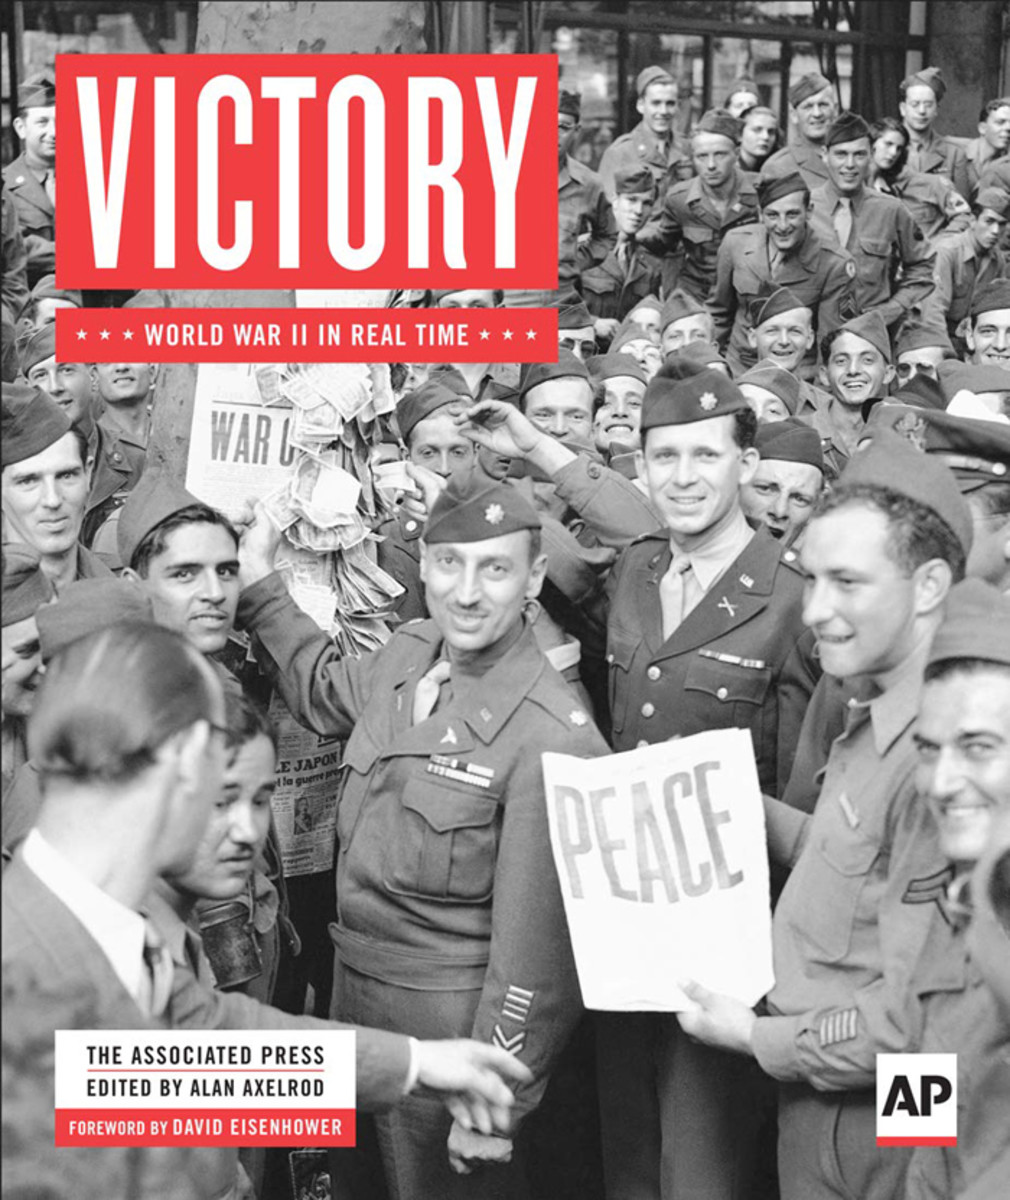 Cover of Victory: World War II in Real Time, by the Associated Press